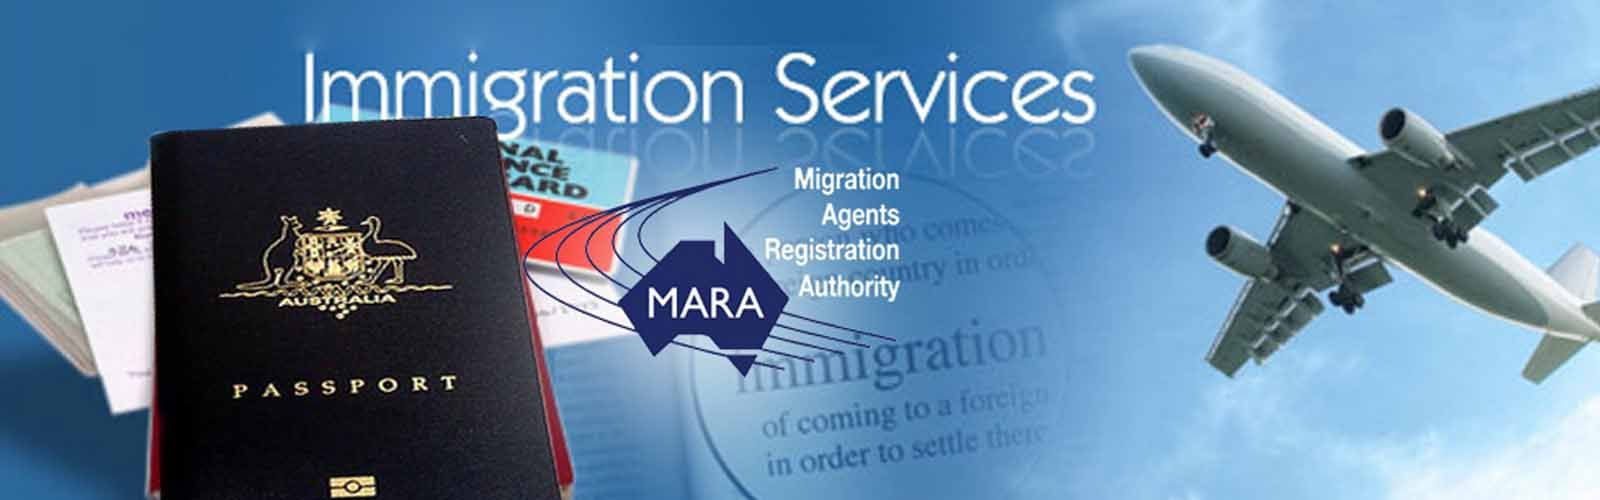 Meharban International Best Immigrationservices Provider For